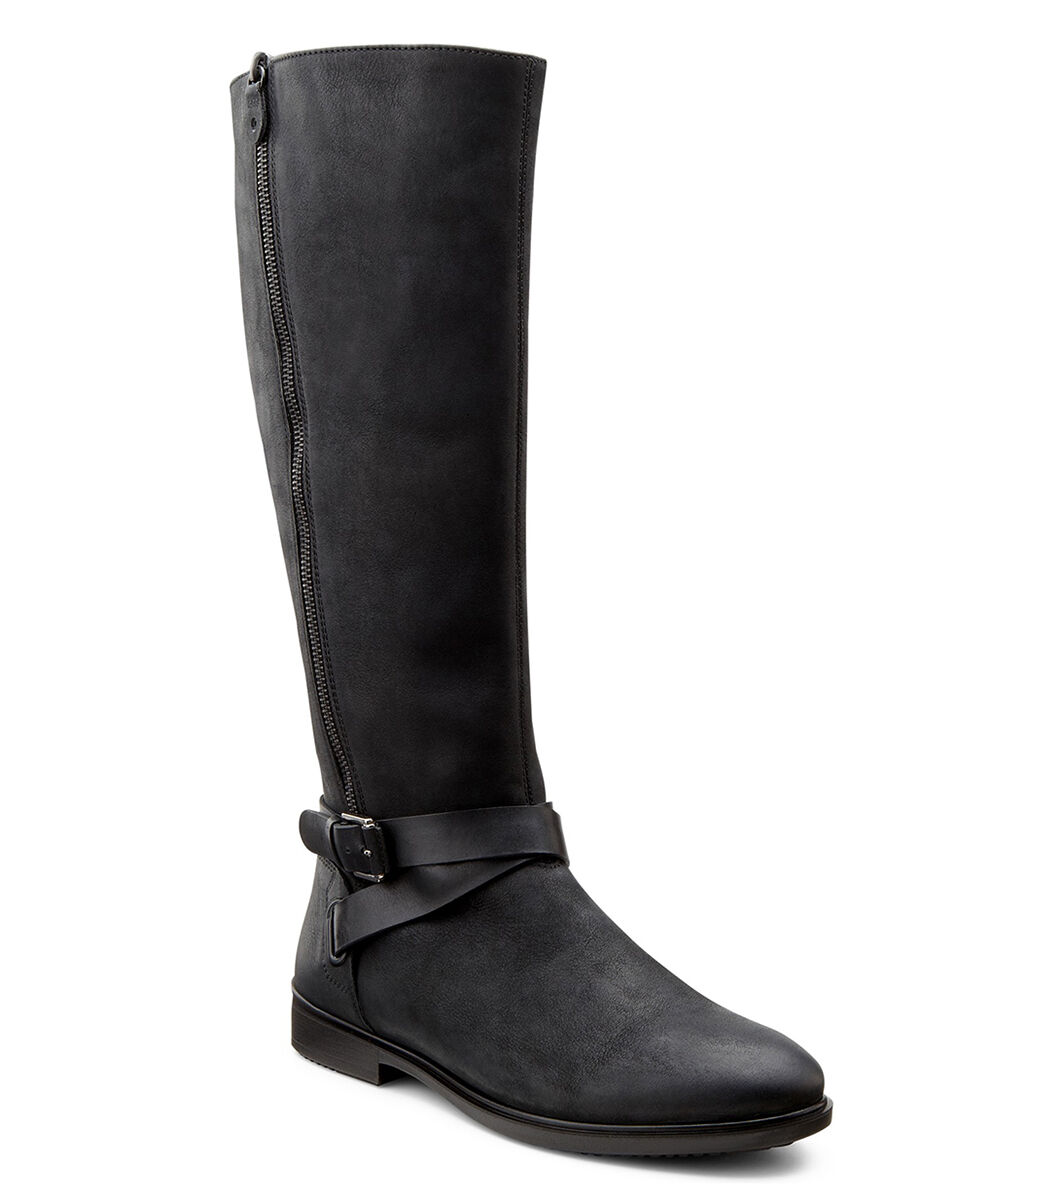 Ecco Bottes TOUCH 15B HIGH BOOT